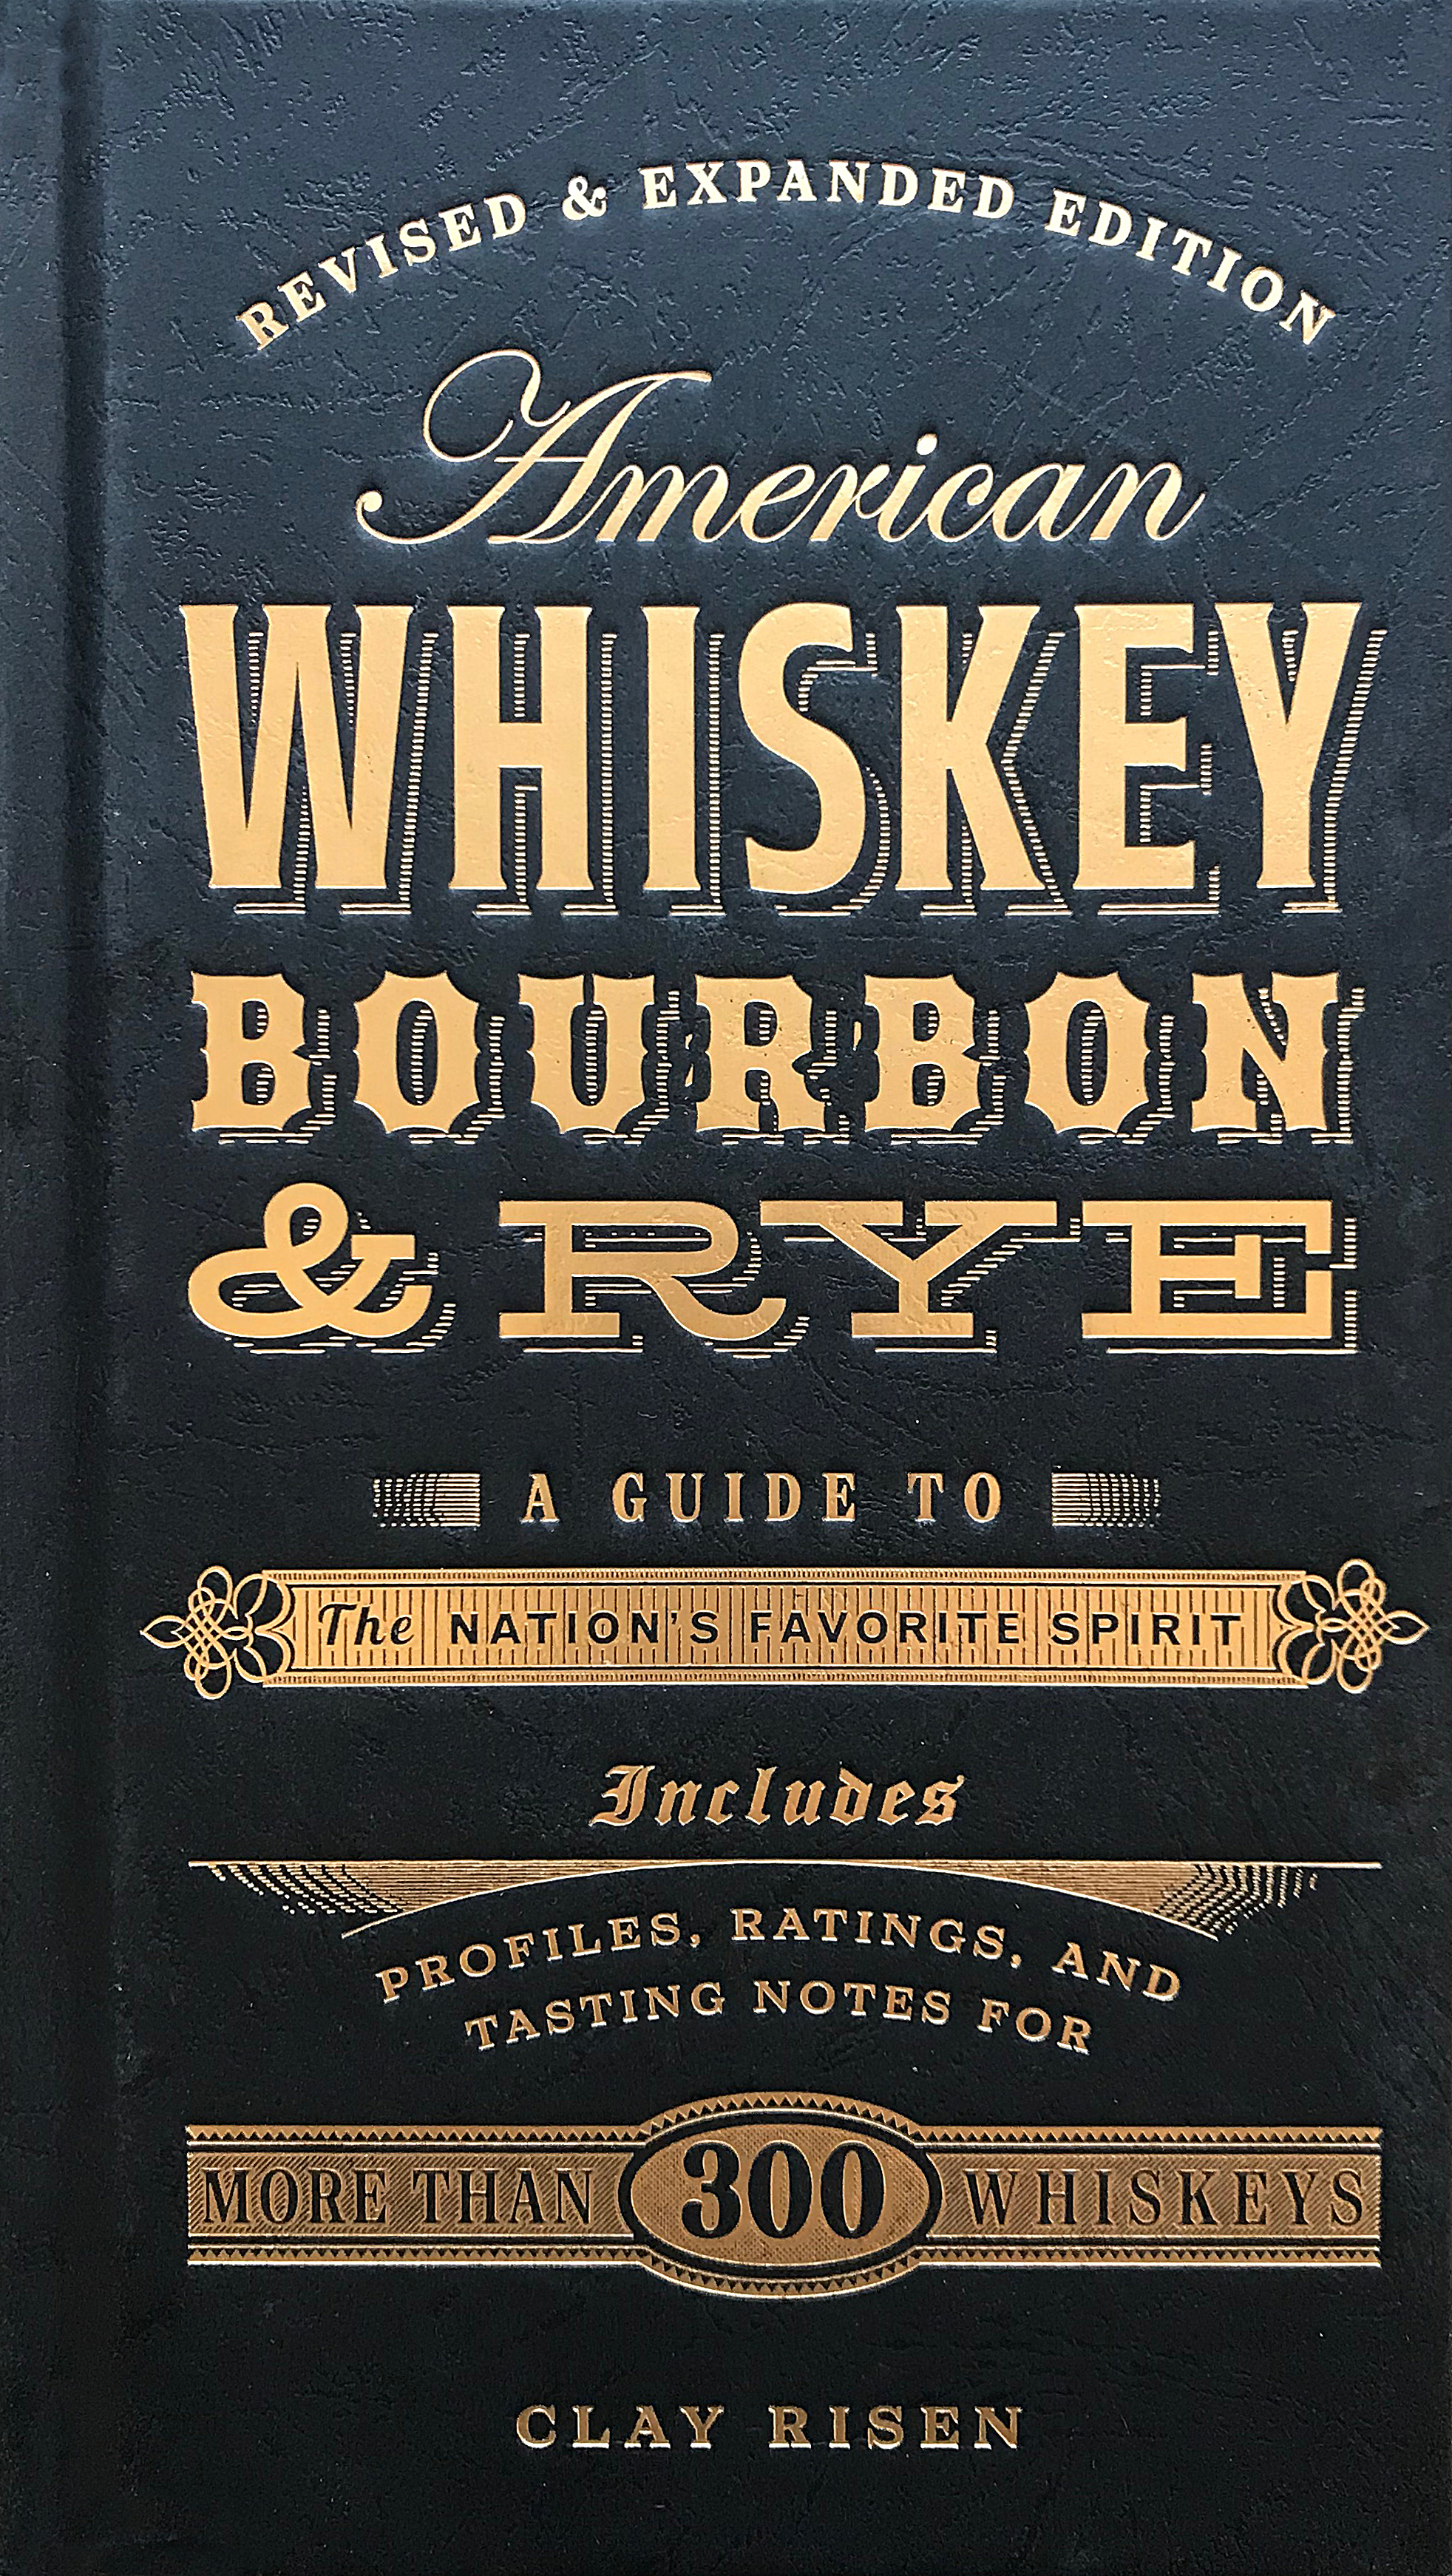 "American Whiskey, Bourbon & Rye: A Guide to the Nation's Favorite Spirit - Critical Acclaim""A comprehensive and opinionated guide for the intermediate tippler…It's a detailed, admirably cranky directory. Risen's tasting notes for each are eruditeand fun.""—Wall Street Journal""Risen is something of a Renaissance man…a Leonardo da Vinci of whiskey. American Whiskey, Bourbon & Rye…should have a proud place on the bookshelf (or by the bar) of anyone who is an enthusiast of bourbon and other American whiskeys. Very useful for shopping purposes…Bring this book with you.""—Los Angeles Review of Books""Risen delicately walks readers into whiskey's past, present, and future.…His words are meant for whiskey lovers, as he dissects every brand's story and scores products on an NR (not recommended) to four-star scale. An American whiskey treasure worthy of four stars.""—Whisky Advocate""A whiskey novice's best friend...It's a book I plan on keeping around for constant reference.""—SaveurThe bible of American whiskey has been updated. Organized in an A-to-Z directory by distillery or brand, this second edition features 338 whiskeys, including more than 145 new entries. Each section includes a brief history of the maker, along with its location, followed by a full account of each bottling, including details on age, proof, nose, color, body, palate, price, as well as an overall rating. A comprehensive primer provides a short history of the spirit, how it's made, and how to enjoy it, including tips on organizing tasting sessions. Also included are a glossary of terms, a selection of top whiskeys by ratings and value, a handy checklist, and index. With this book, choosing from among the many whiskeys, bourbons, and ryes made in America has never been easier.Hardcover: 392 pagesPublisher: A Scott & Nix Edition/Sterling EpicureSize: 5 x 9"